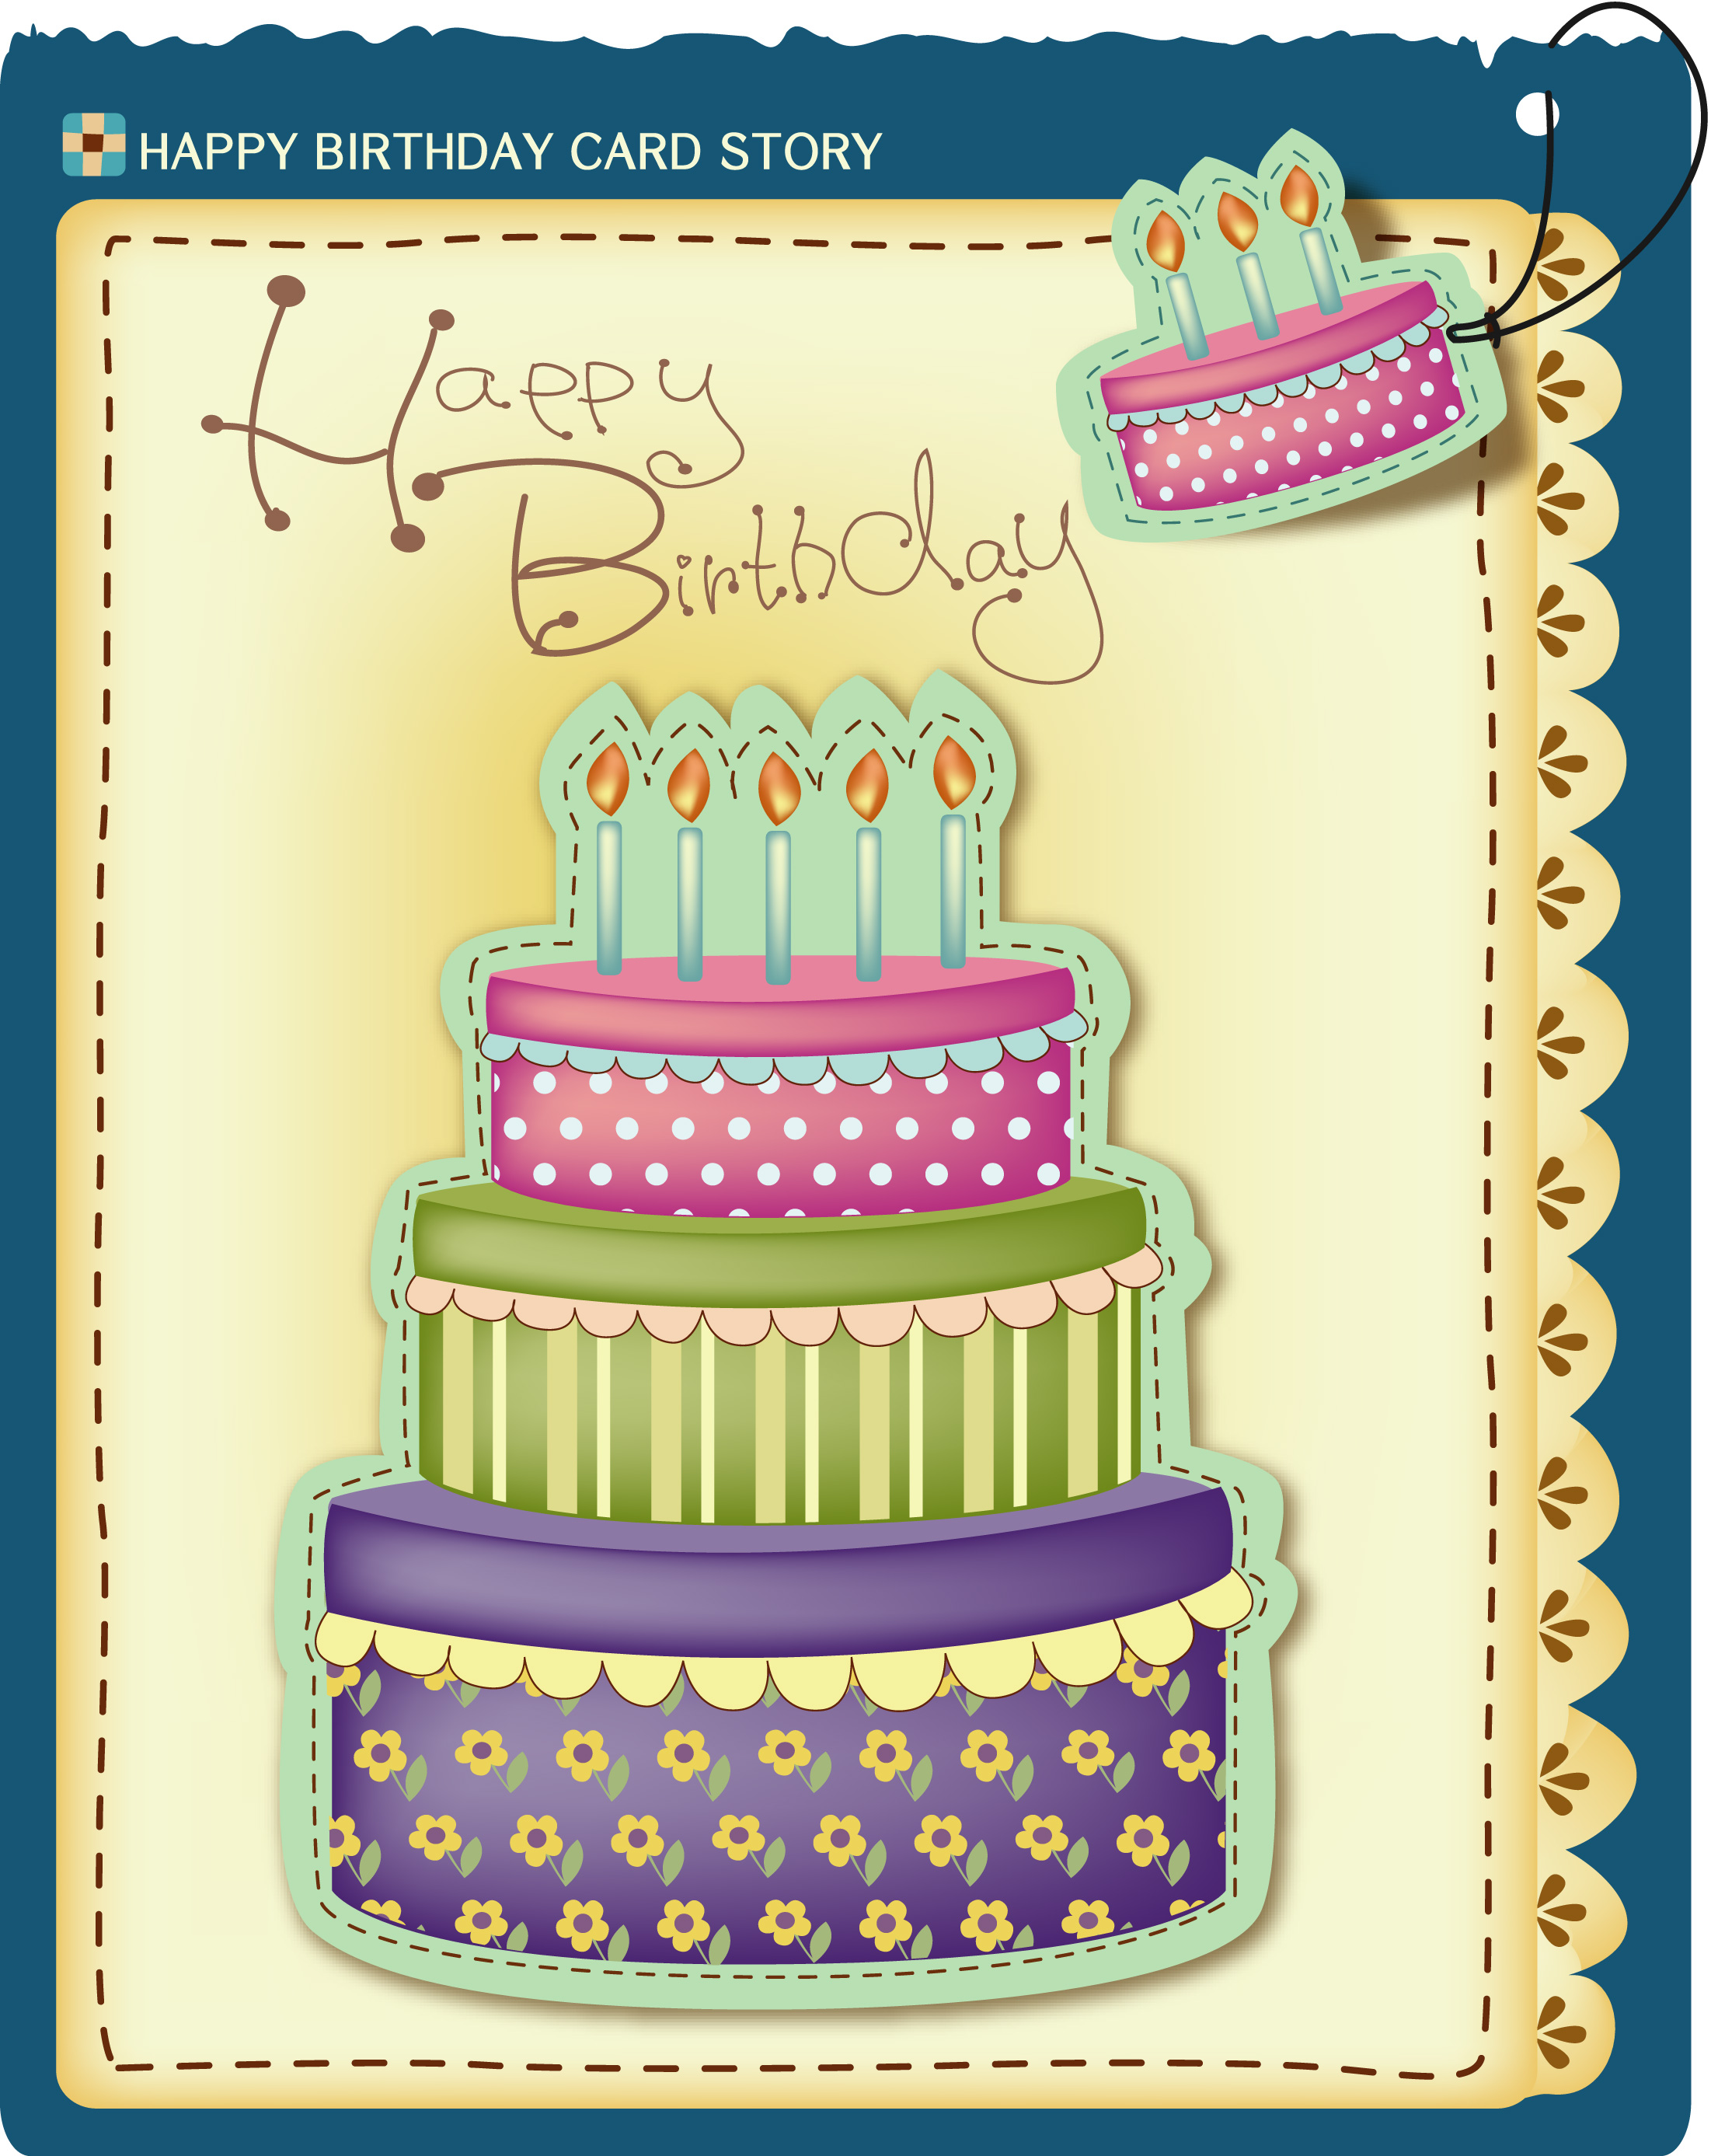 birthday greeting card design free ; designs-for-birthday-cards-wonderful-design-collection-for-your-birthday-card-design-ideas-birthday-cards-design-with-big-cake-design